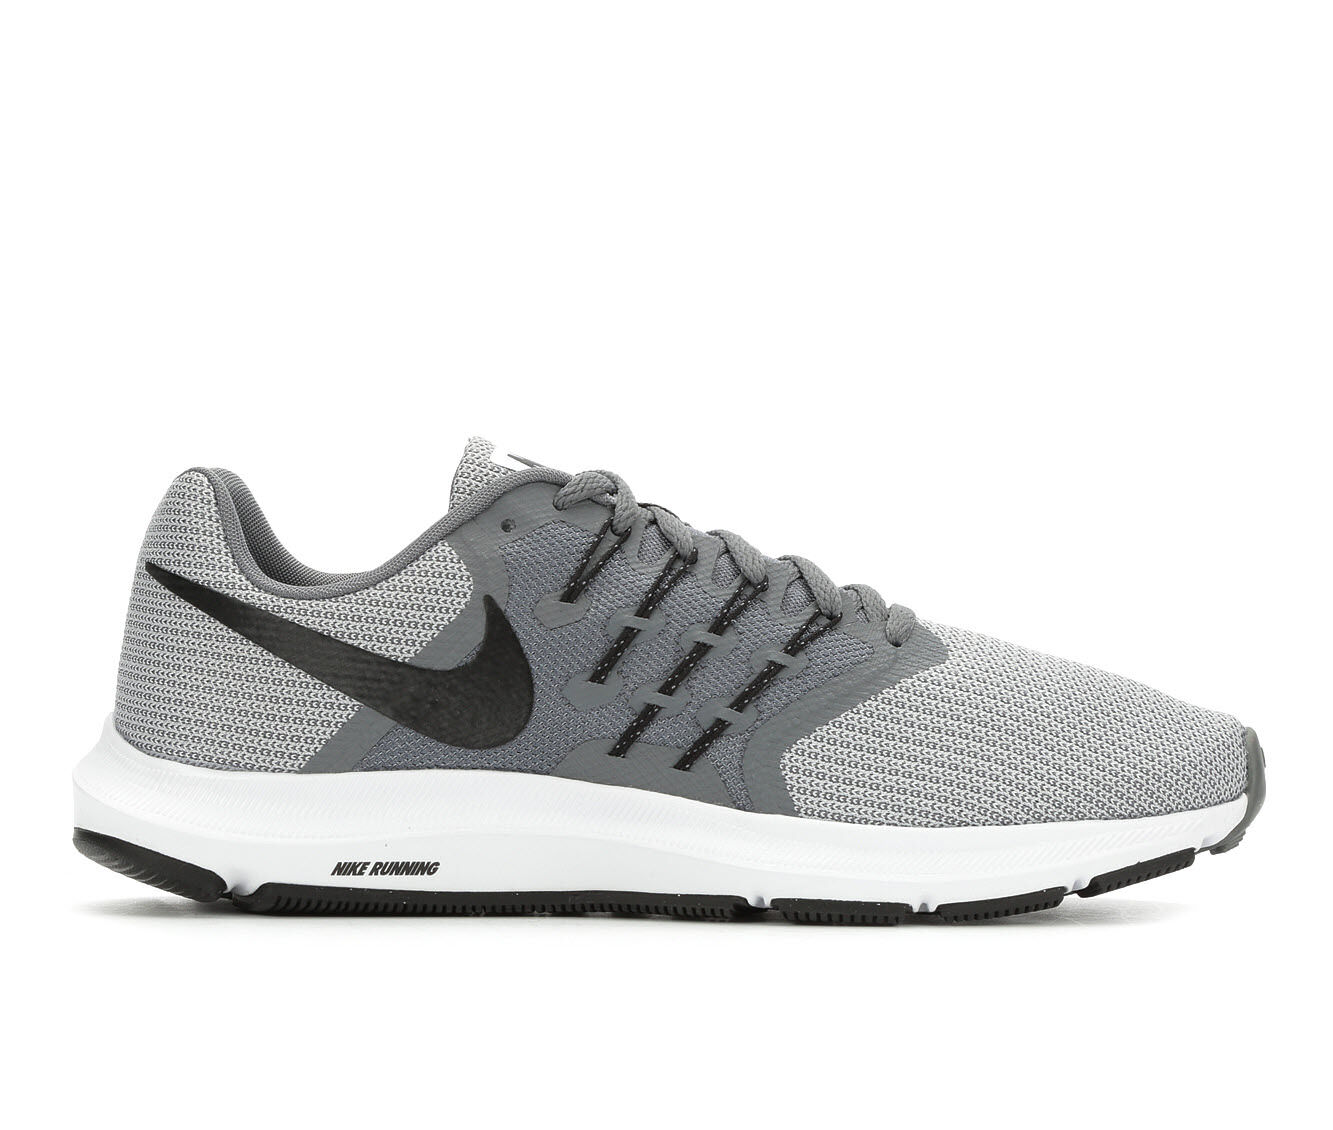 Men's Nike Run Swift Running Shoes Gry/Gry/Blk